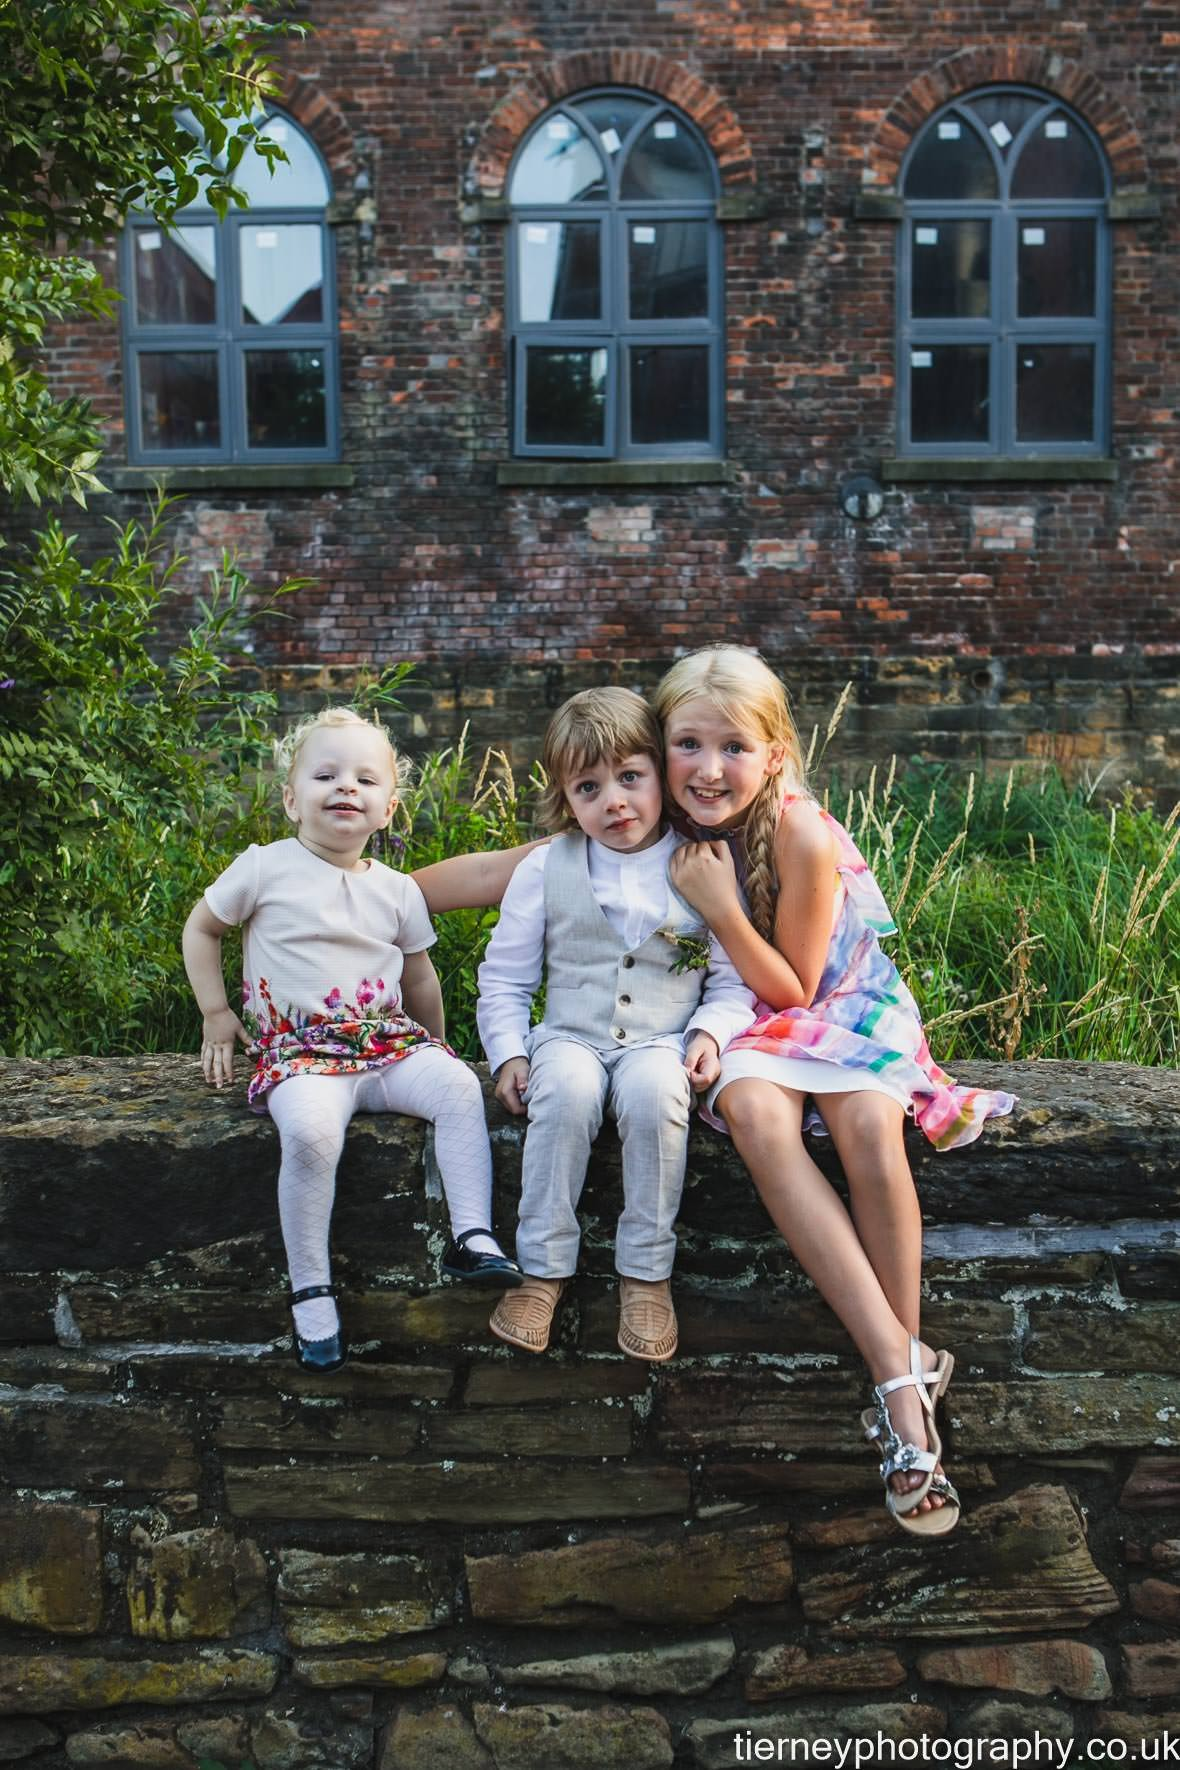 718-wedding-at-kelham-island-museum